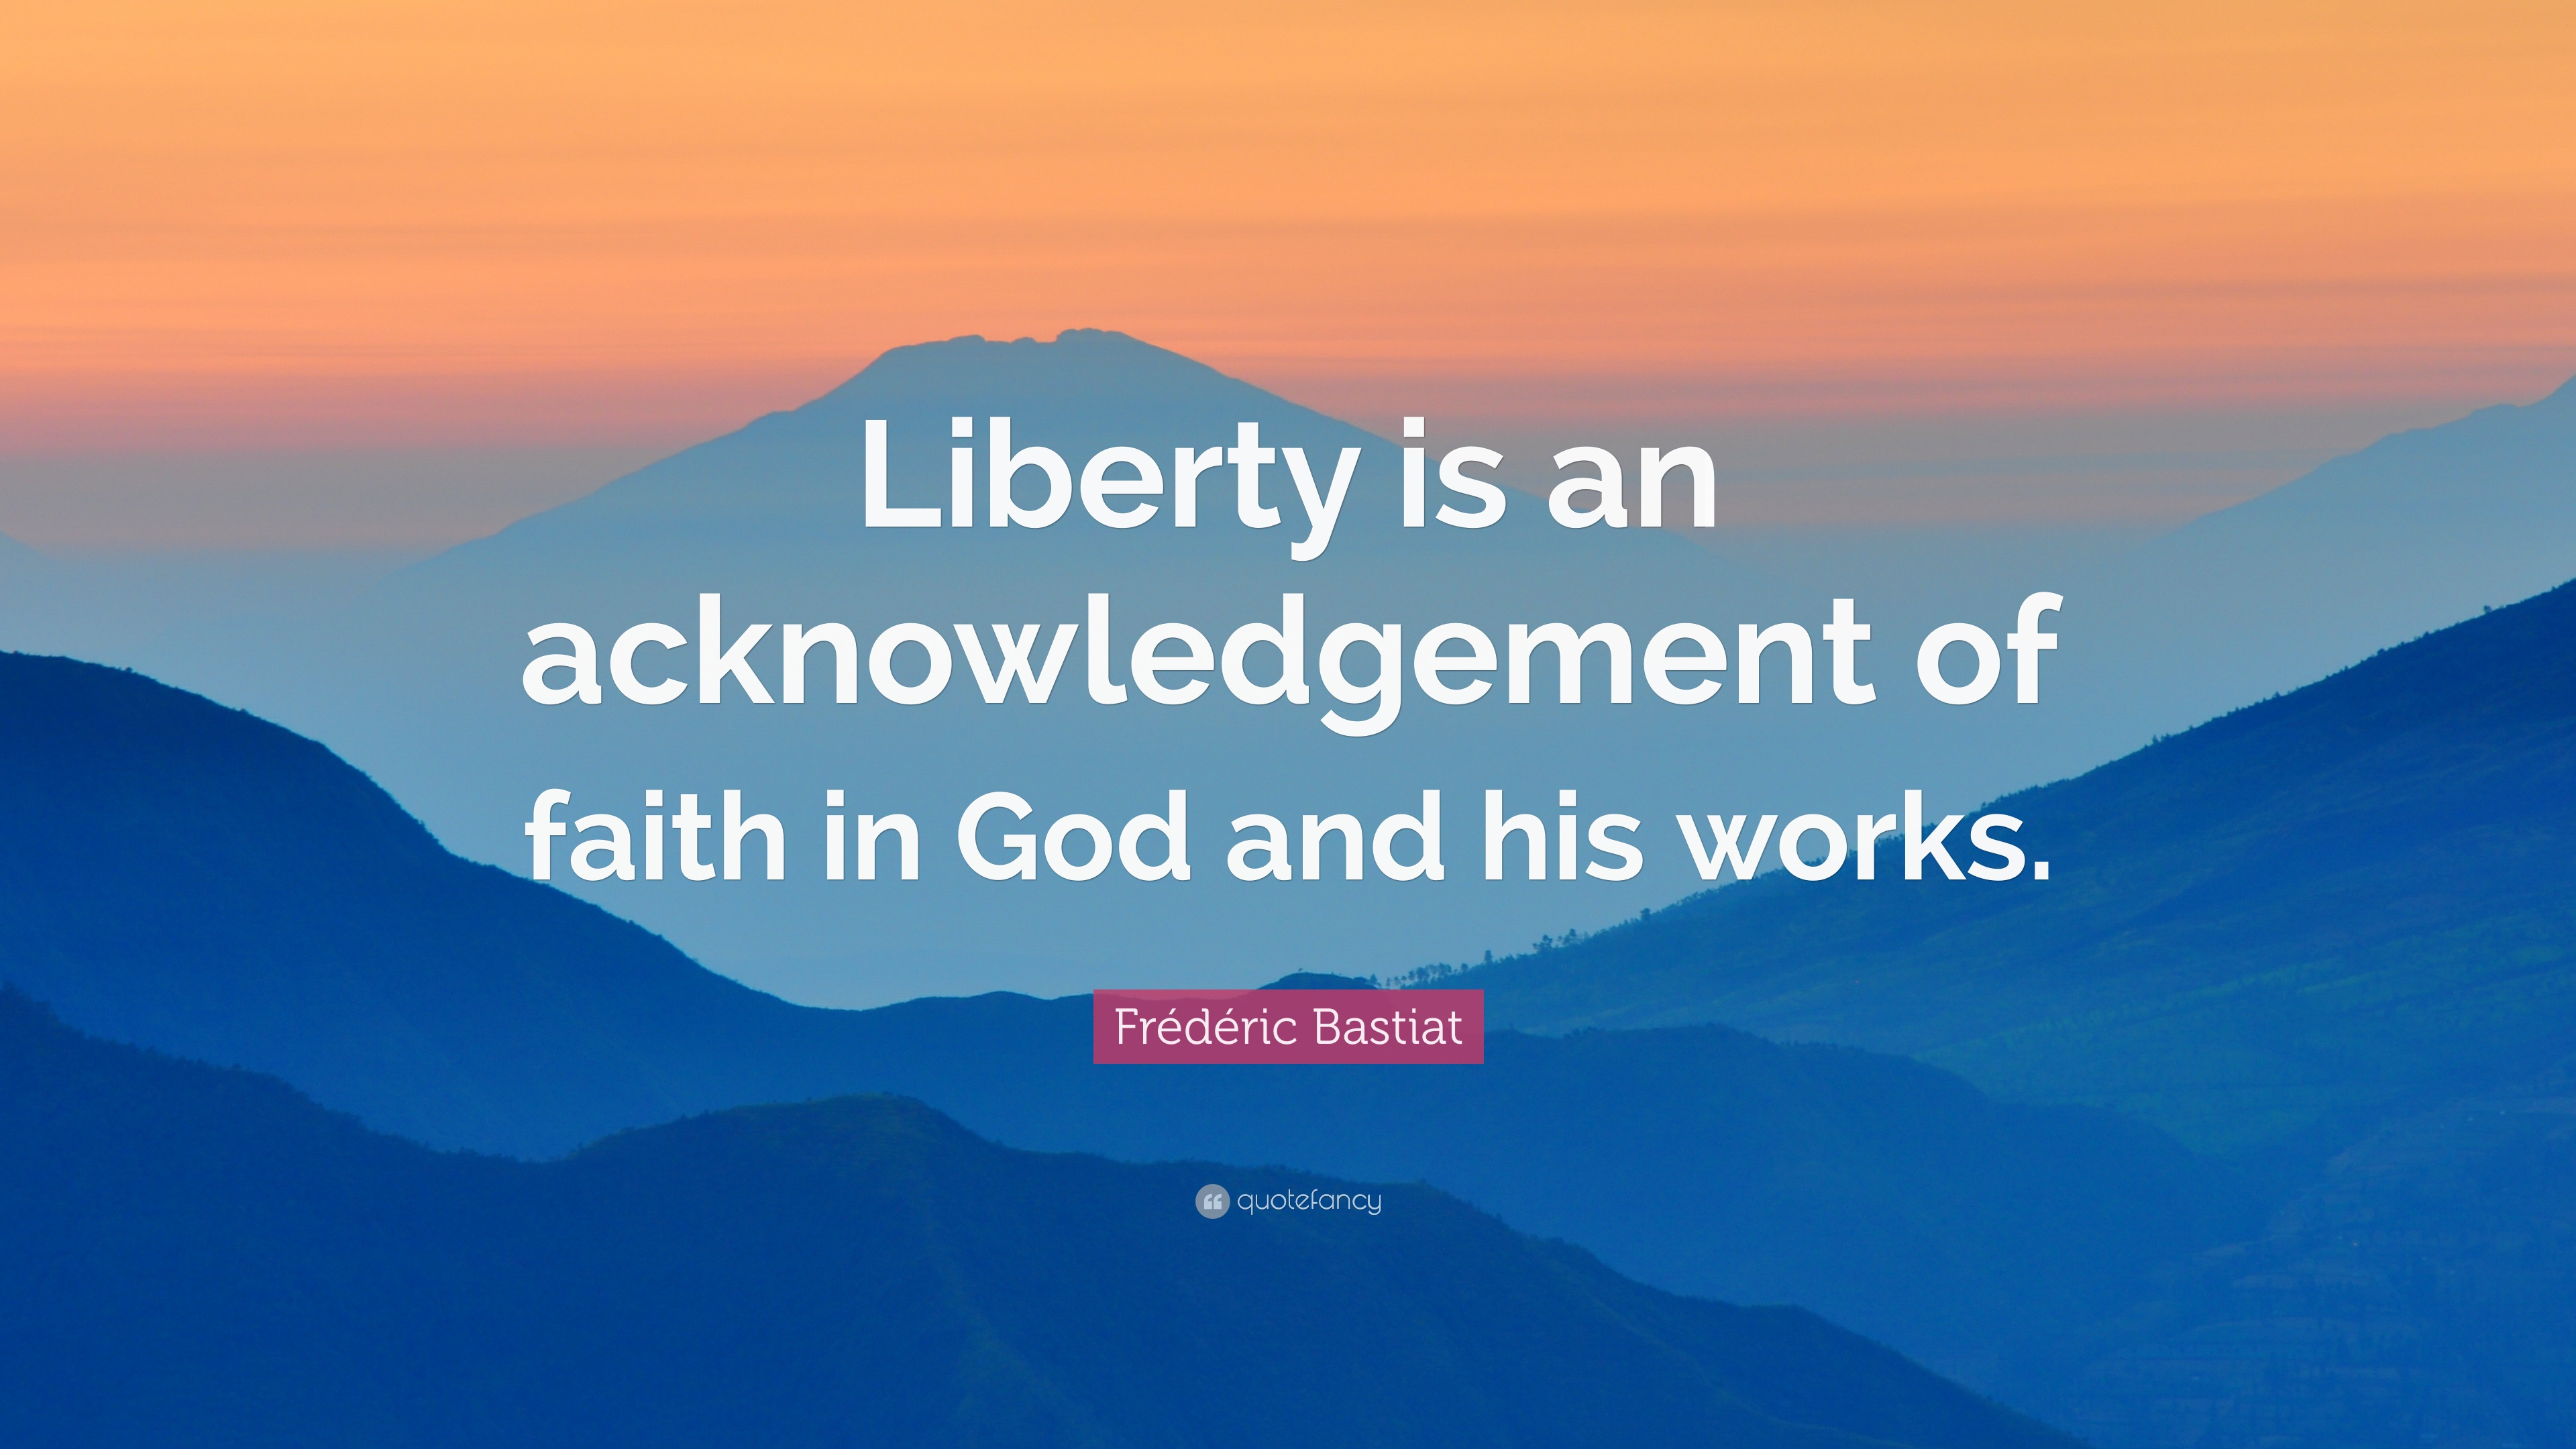 Frdric bastiat quote liberty is an acknowledgement of faith in frdric bastiat quote liberty is an acknowledgement of faith in god and his works altavistaventures Image collections